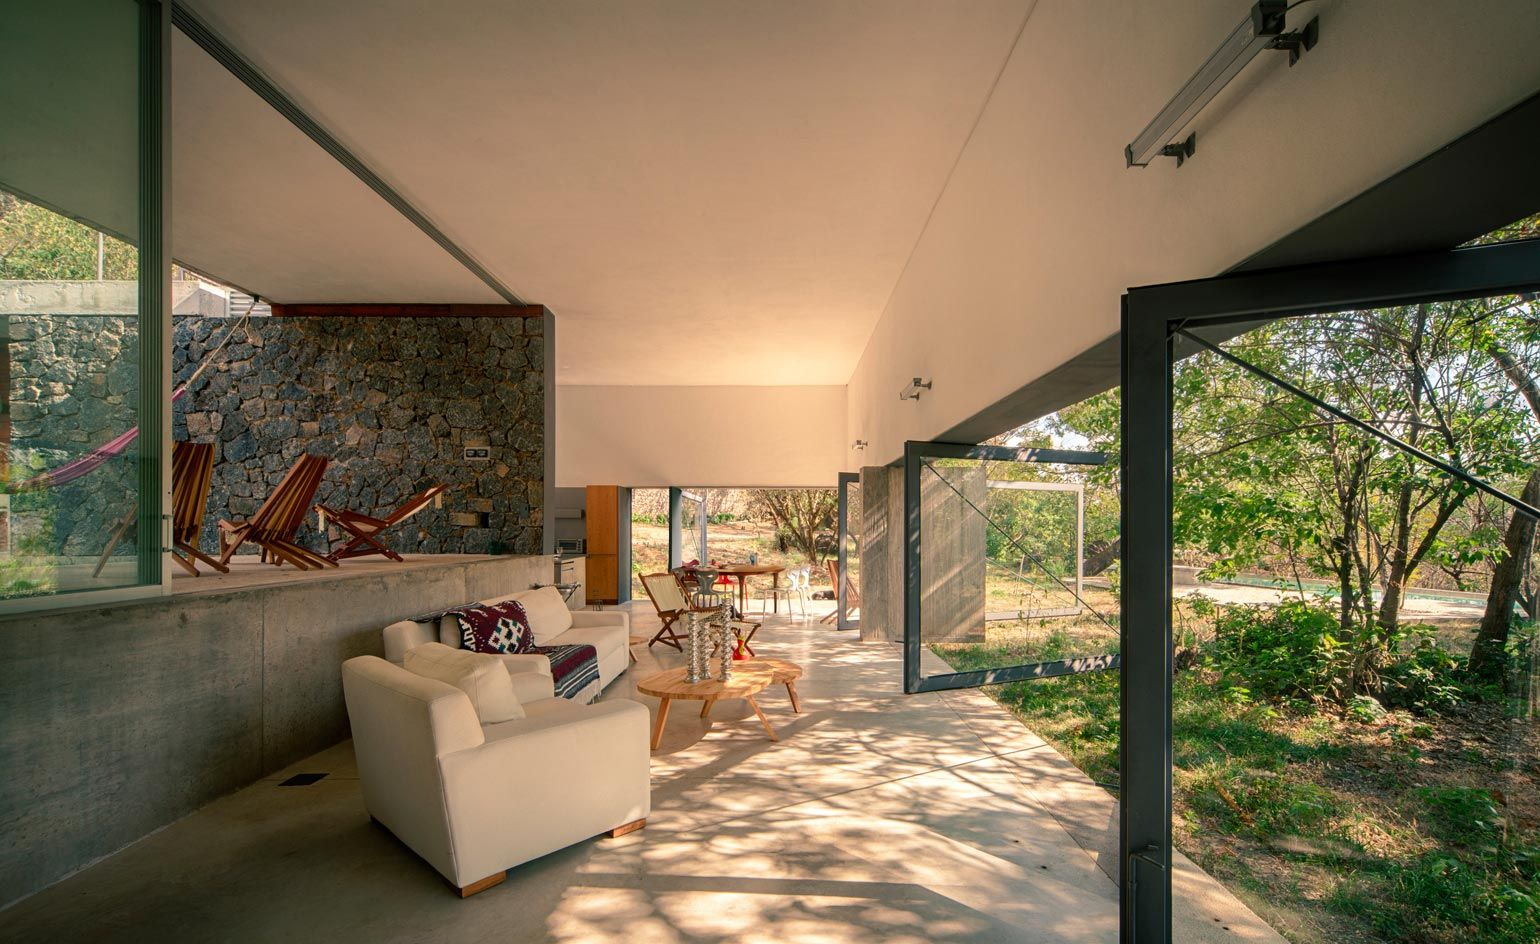 Casa Meztitla A Contemporary House In Rural Mexico Thats Open To The Elements